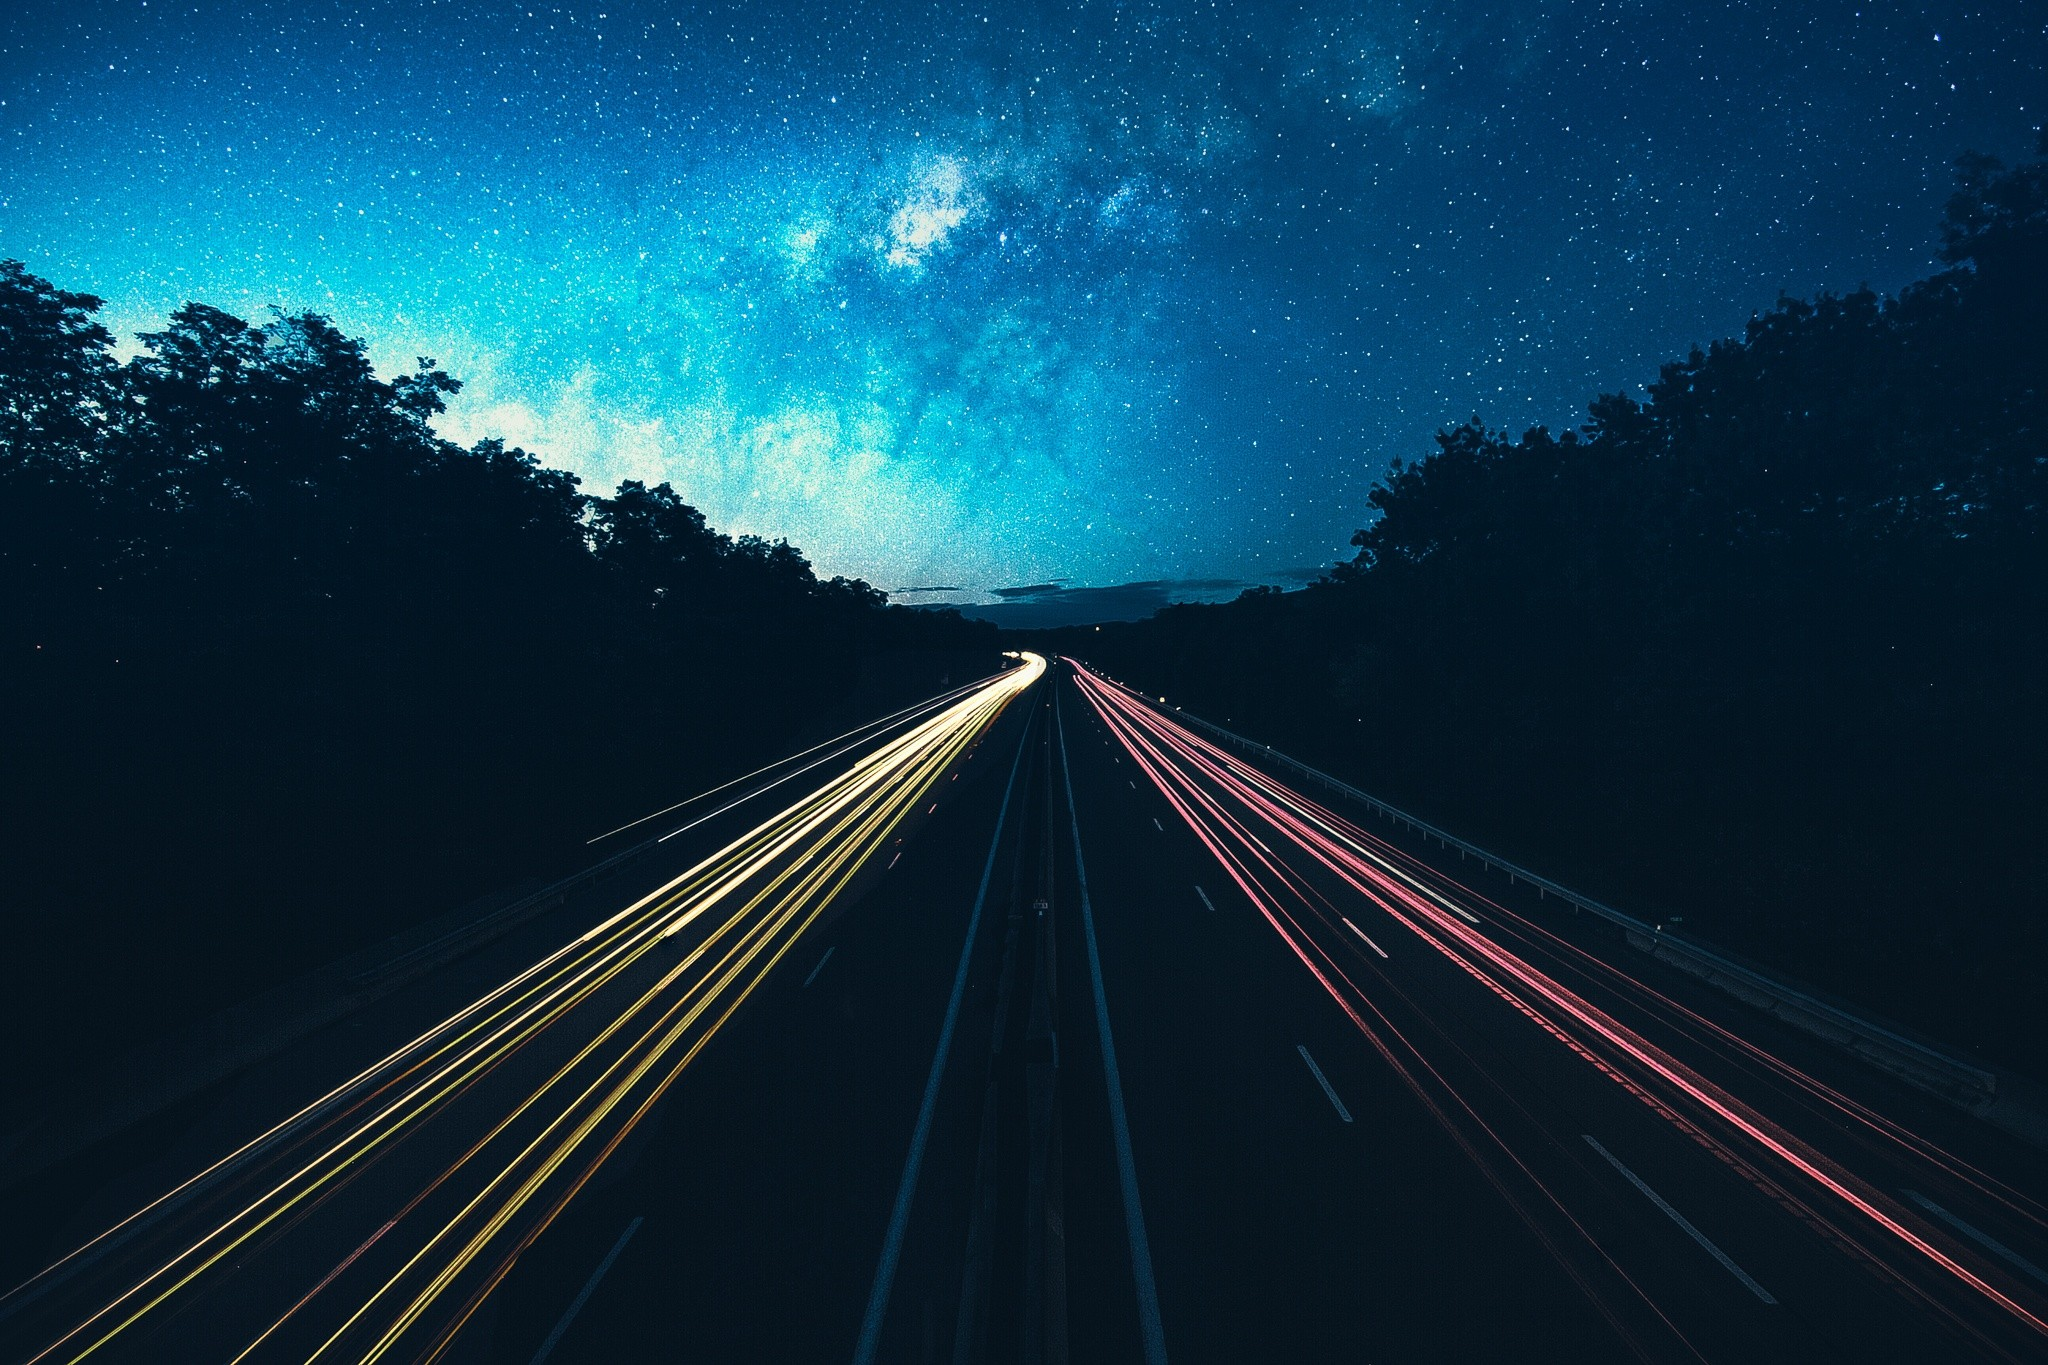 http://lounge.obviousmag.org/monologos_dialogos_e_discussoes/9384-night-sky-road-lights-stars.jpg